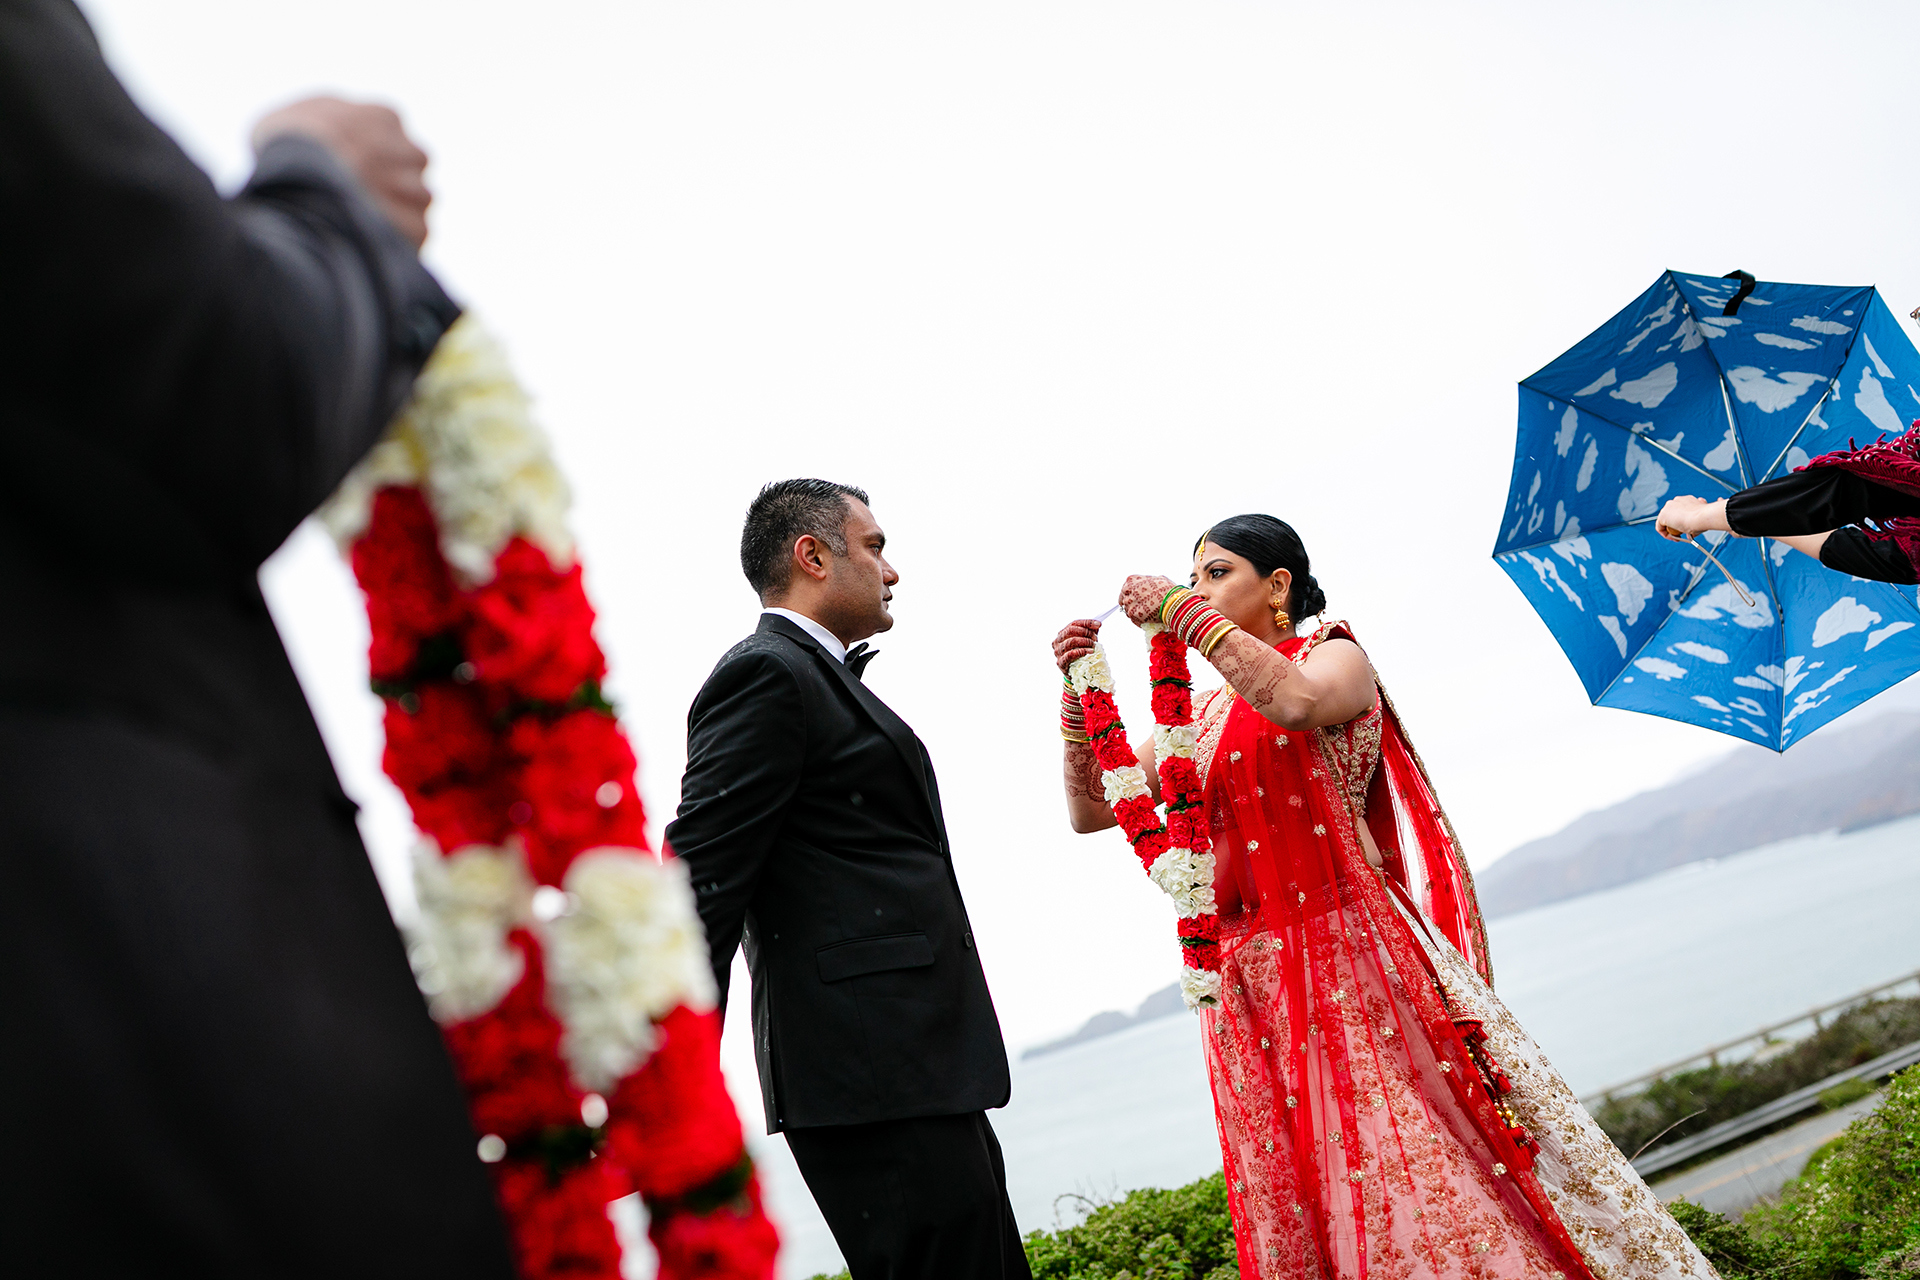 Bay Area Documentary Wedding Photography | As rain began to move into the area, the bride and groom decided to speed up the ceremony